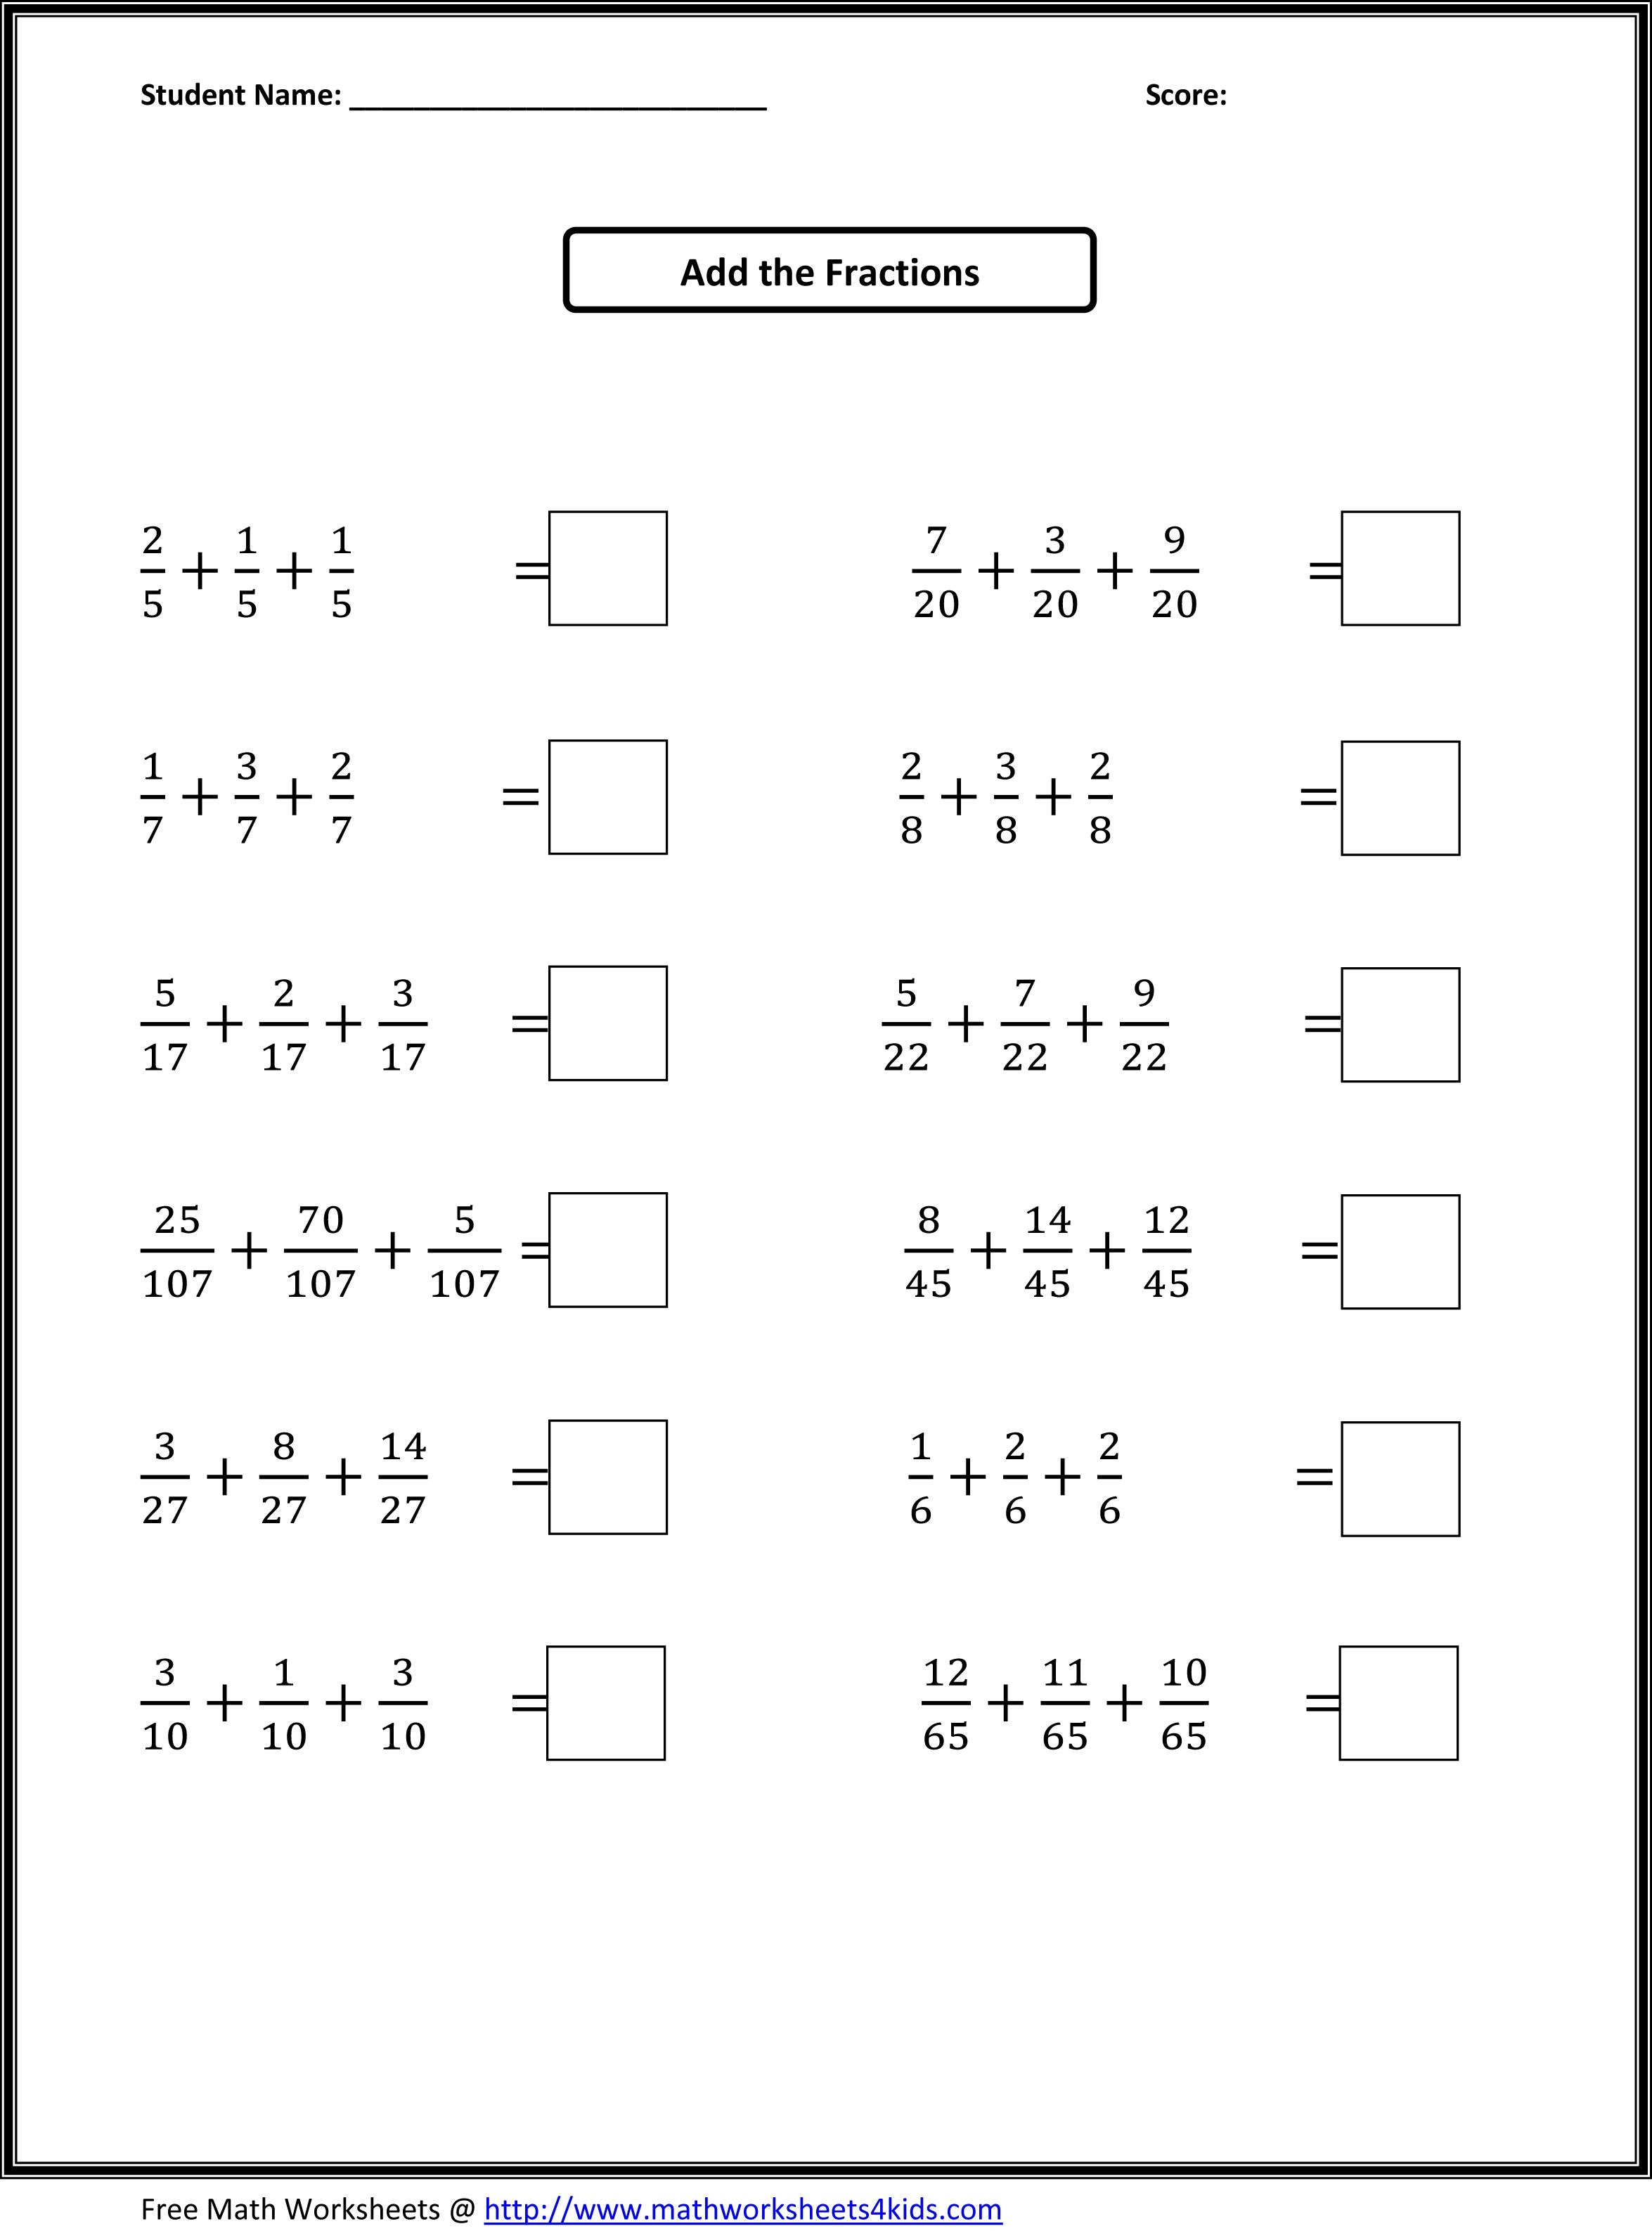 Printable Worksheetsgrade Level Andskill. | Teaching Ideas | K2 Maths Worksheets Printable